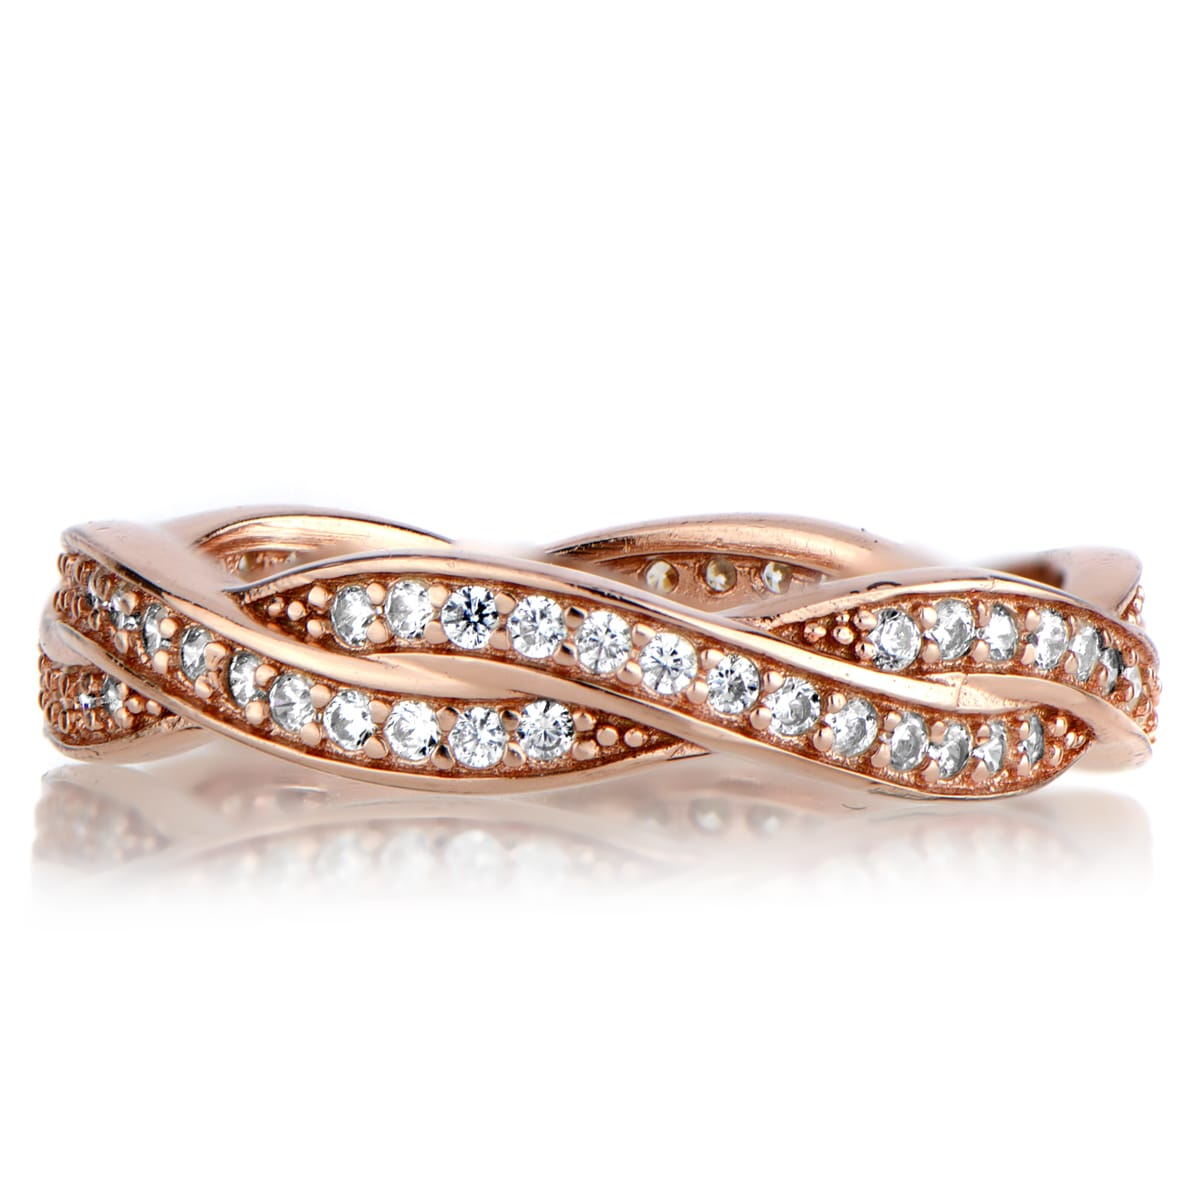 f0c1871e619 Shop Rose Goldtone Sterling Silver Twisted Cubic Zirconia Wedding Band -  Free Shipping On Orders Over  45 - Overstock.com - 10029930